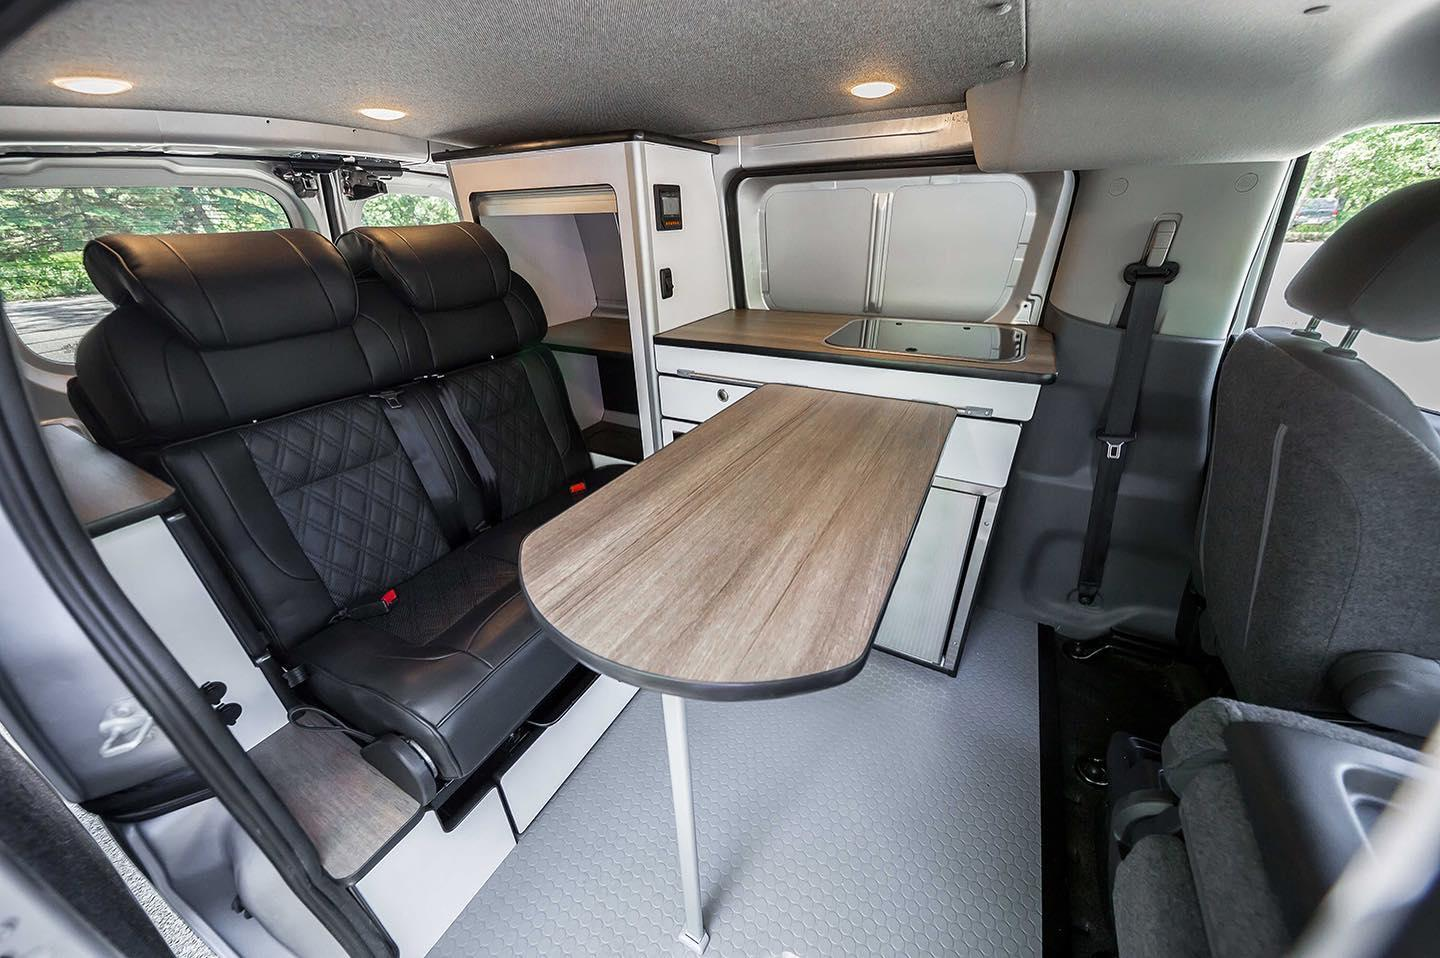 The removable table creates a dining area in the center of the van